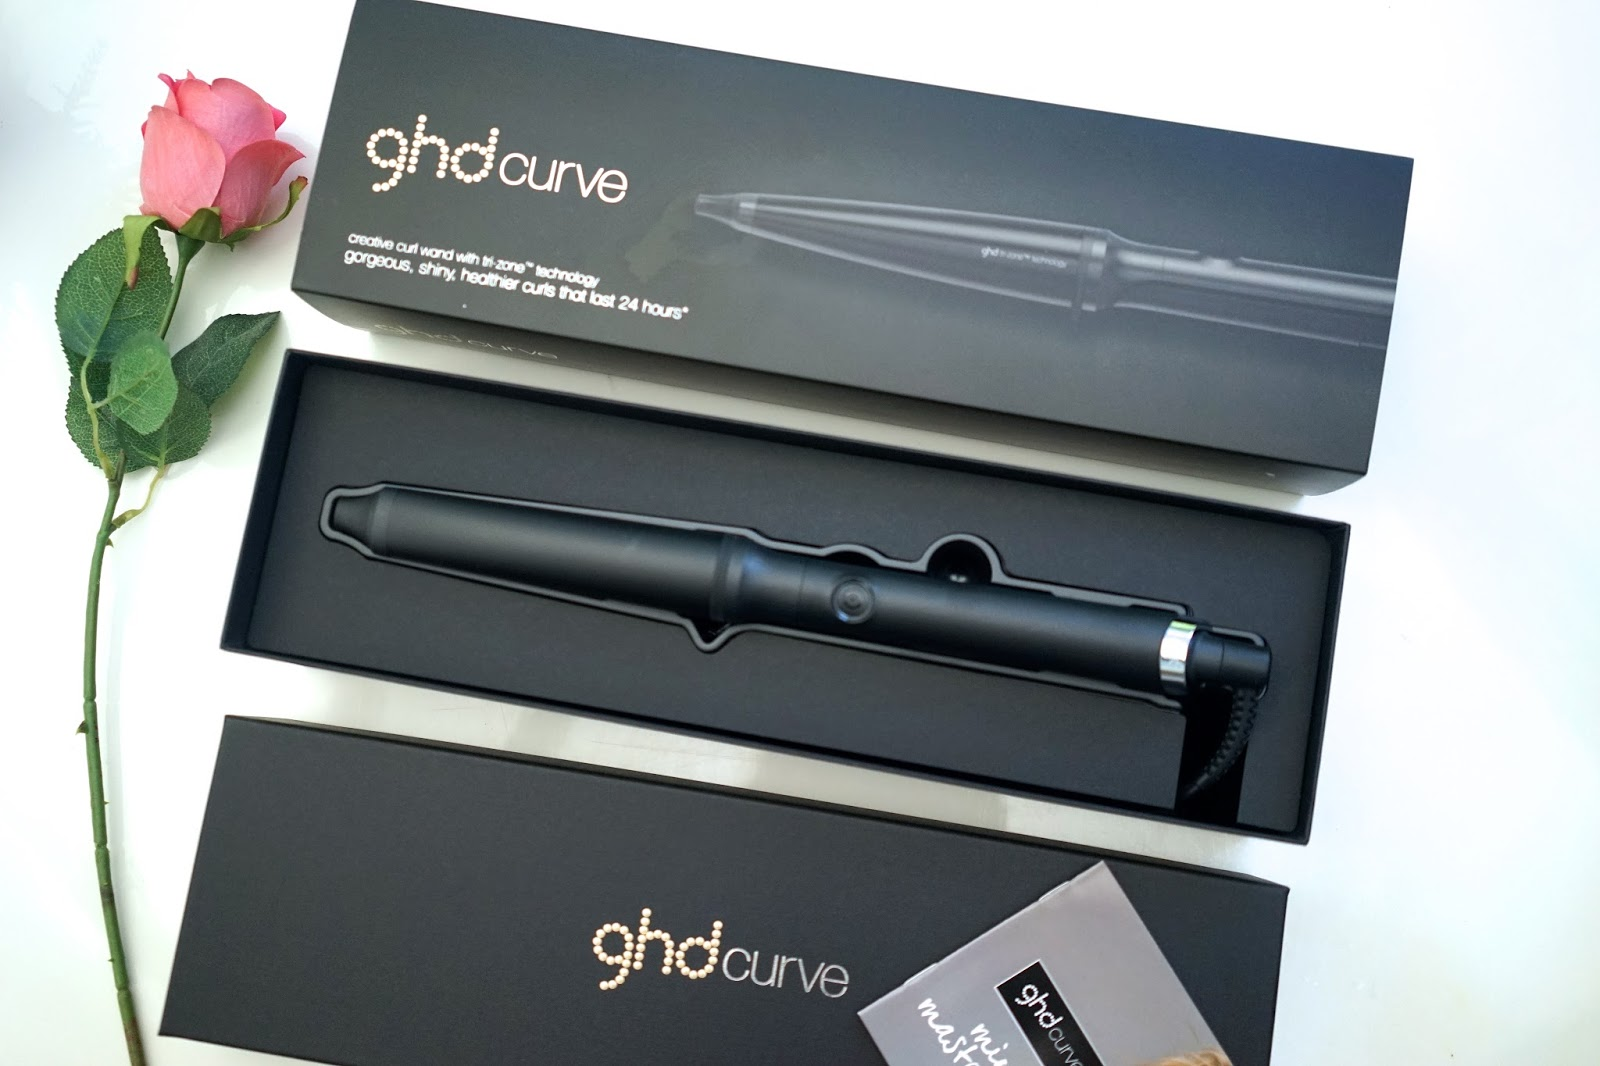 ghd curve review